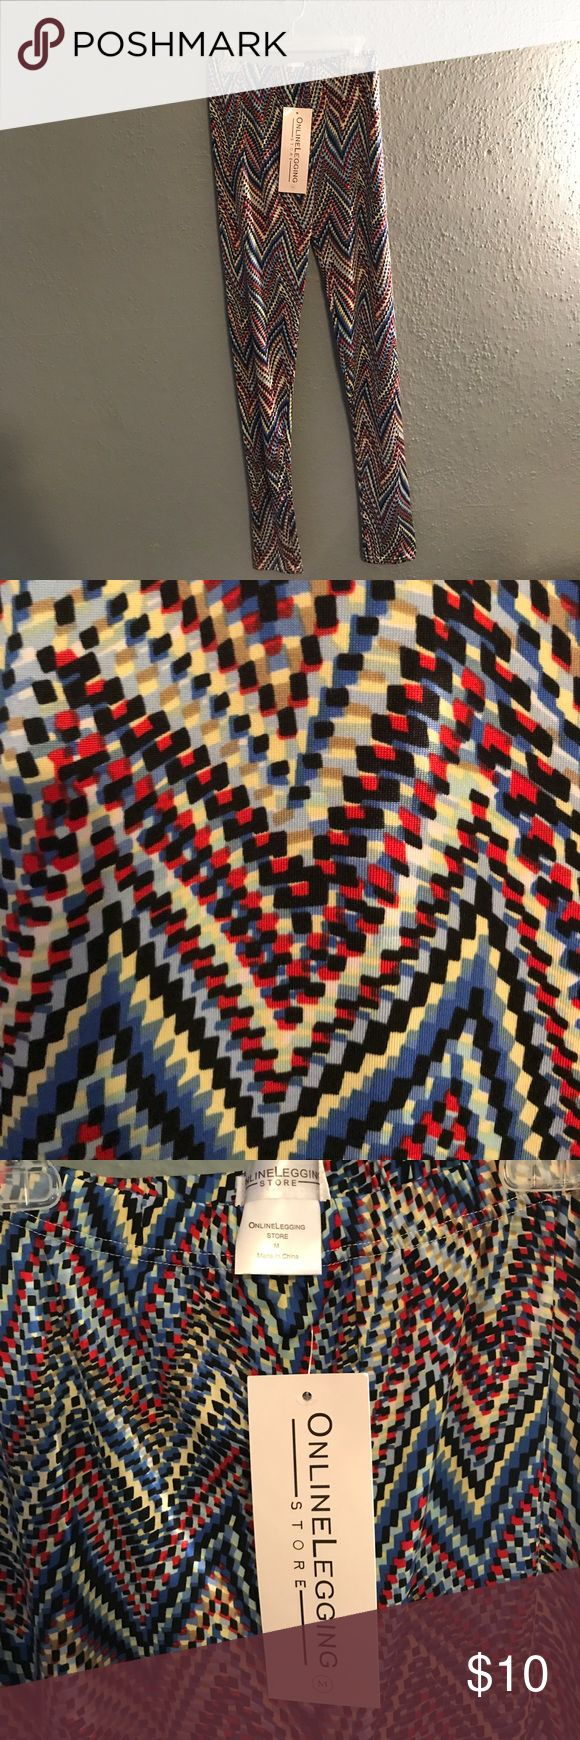 Online Legging Store Leggings Comfy, colorful, geometric patterned leggings from the Online Legging Store. Super cute and never worn. I received these as a Christmas gift and simply have enough leggings in my closet right now so would love to see someone else get use out of these! Pants Leggings